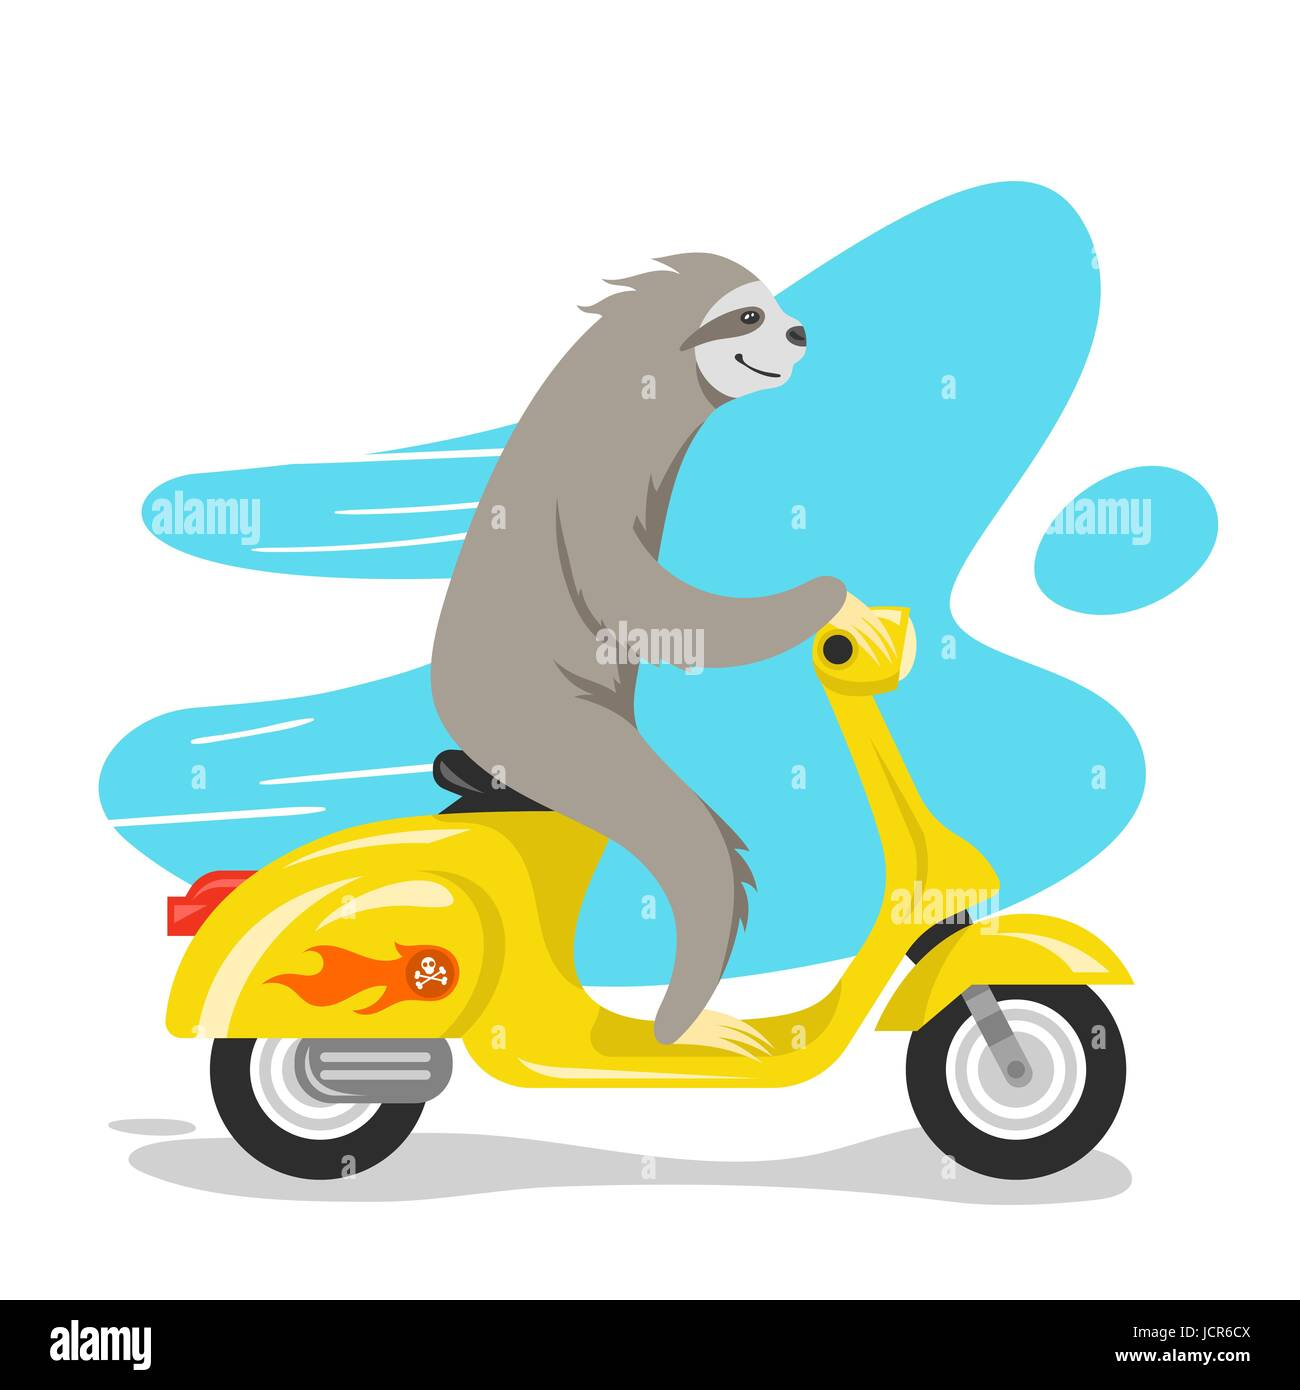 Vector Illustration Of Happy Cute Sloth Riding On Scooter Retro Style Transport Vintage Looking Moped Print For T Shirt Or Poster Design